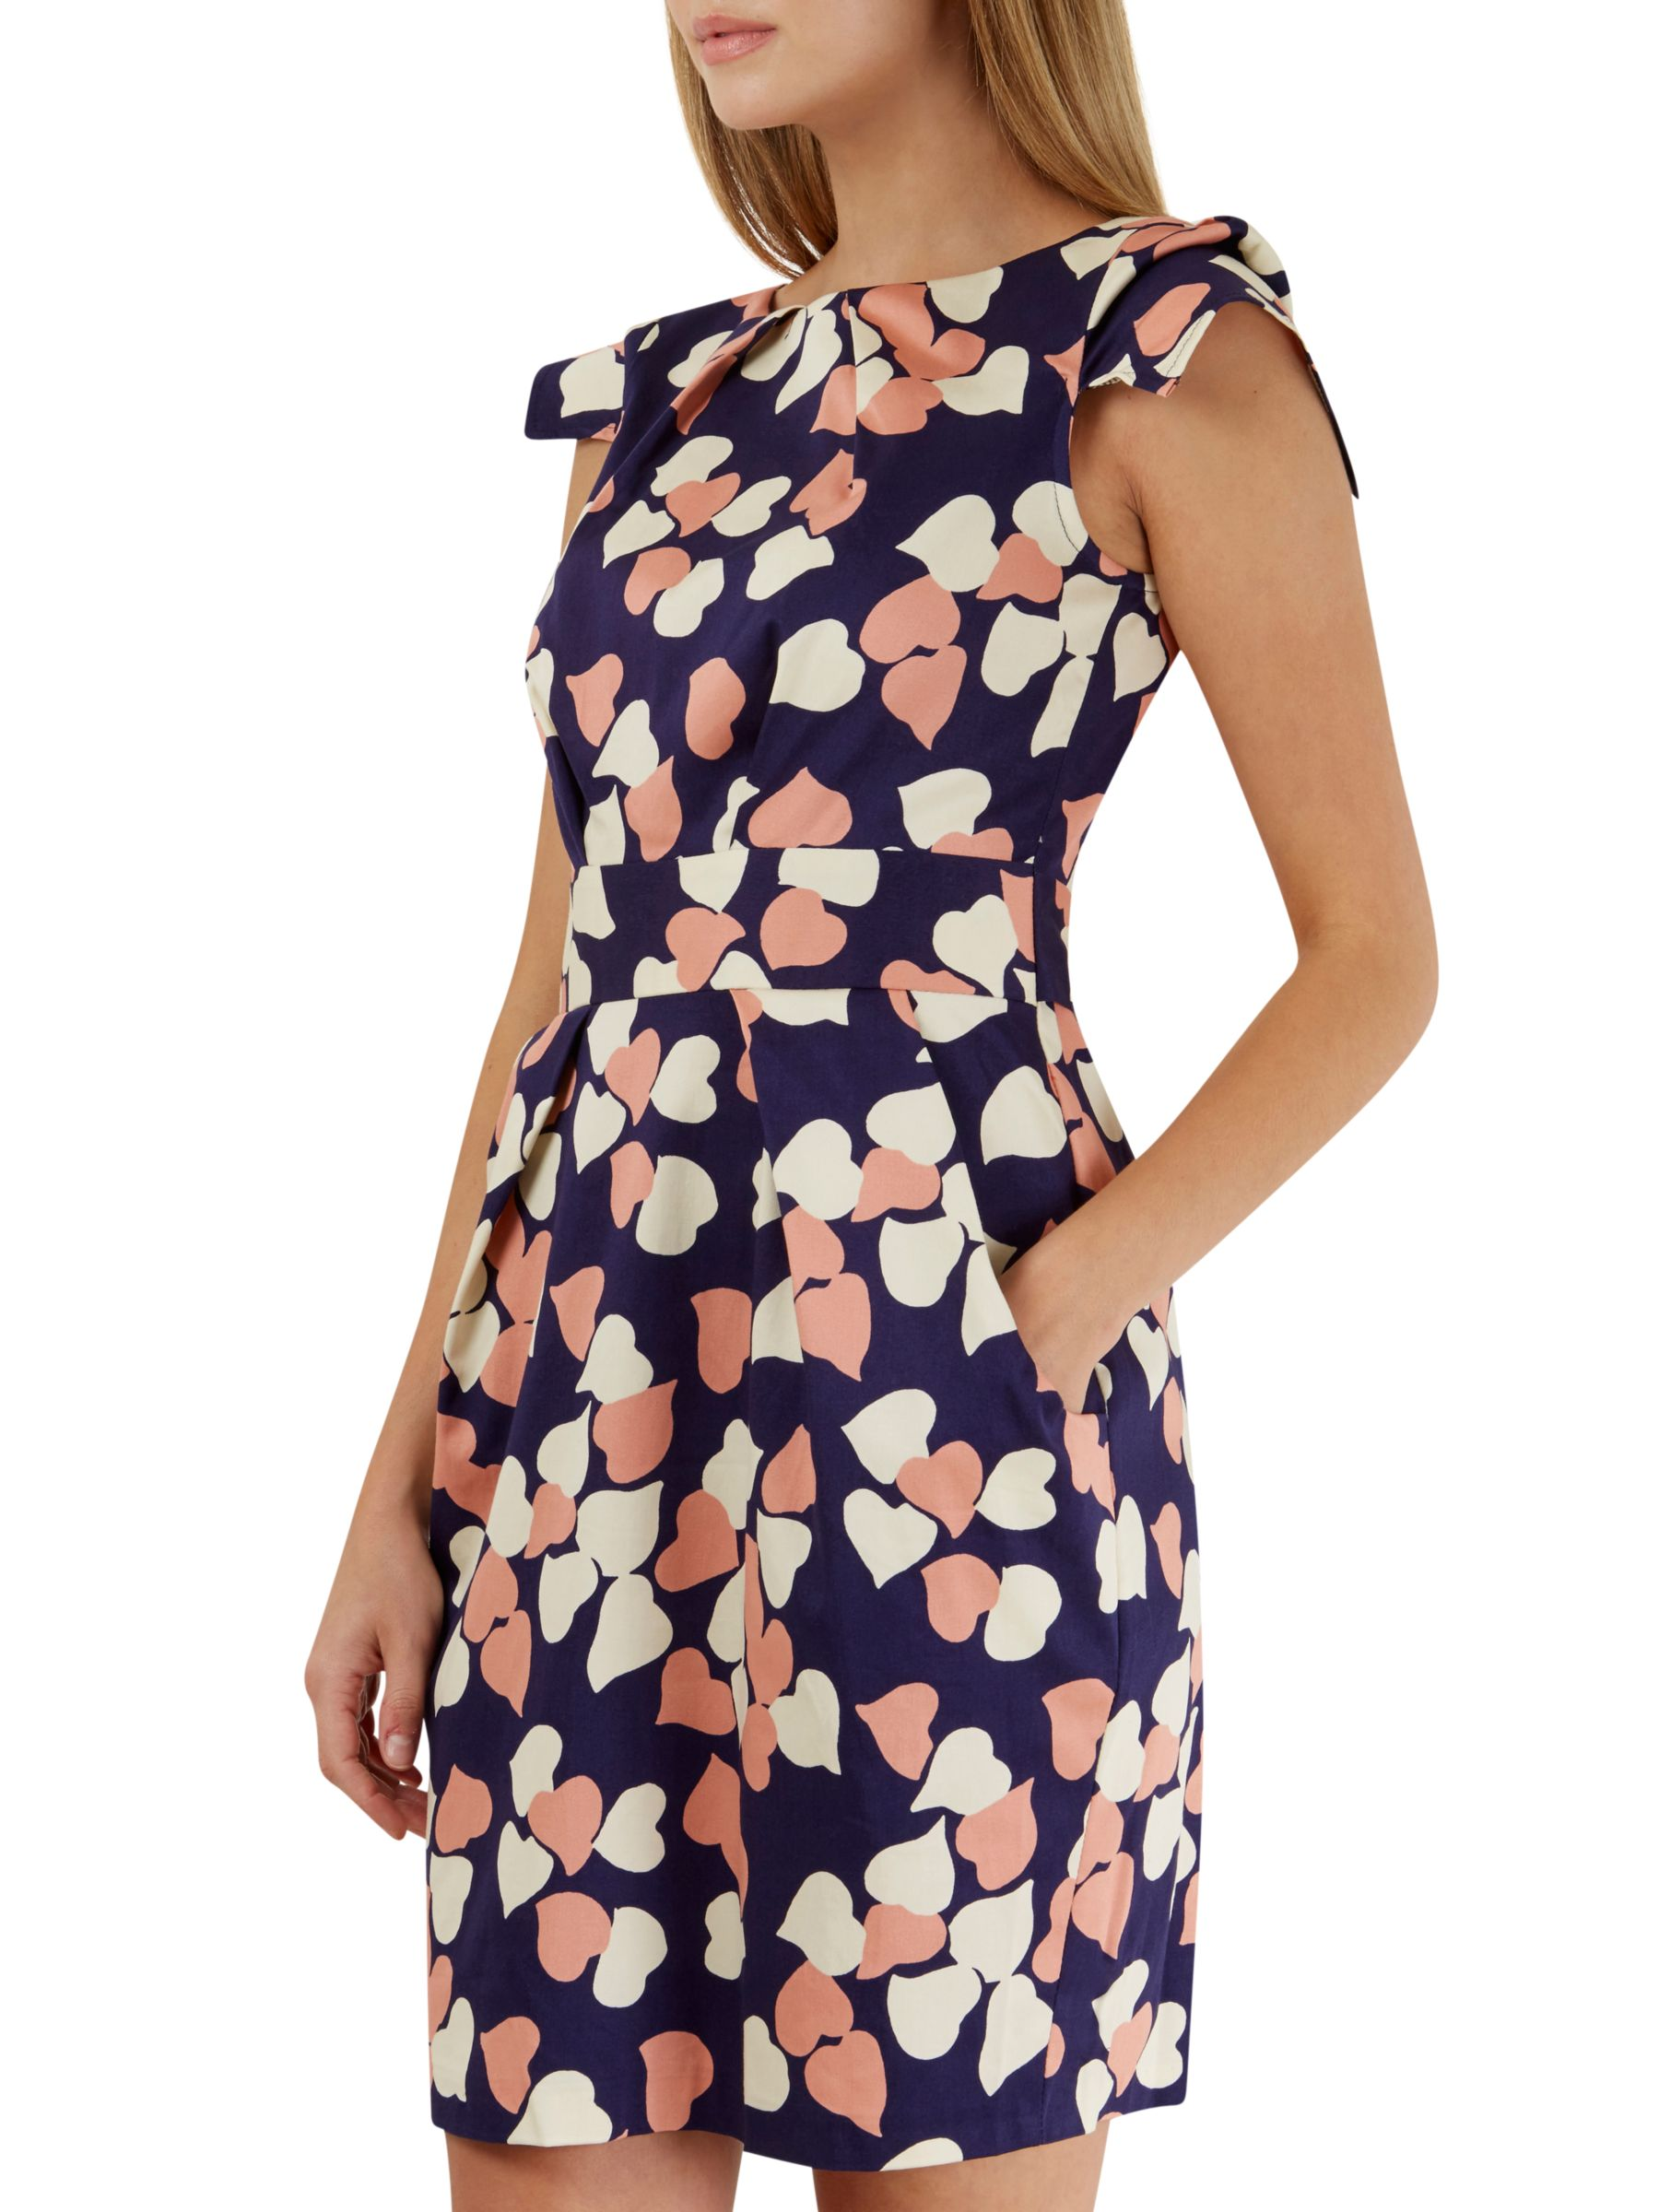 Closet Closet Heart Print Tulip Dress, Multi